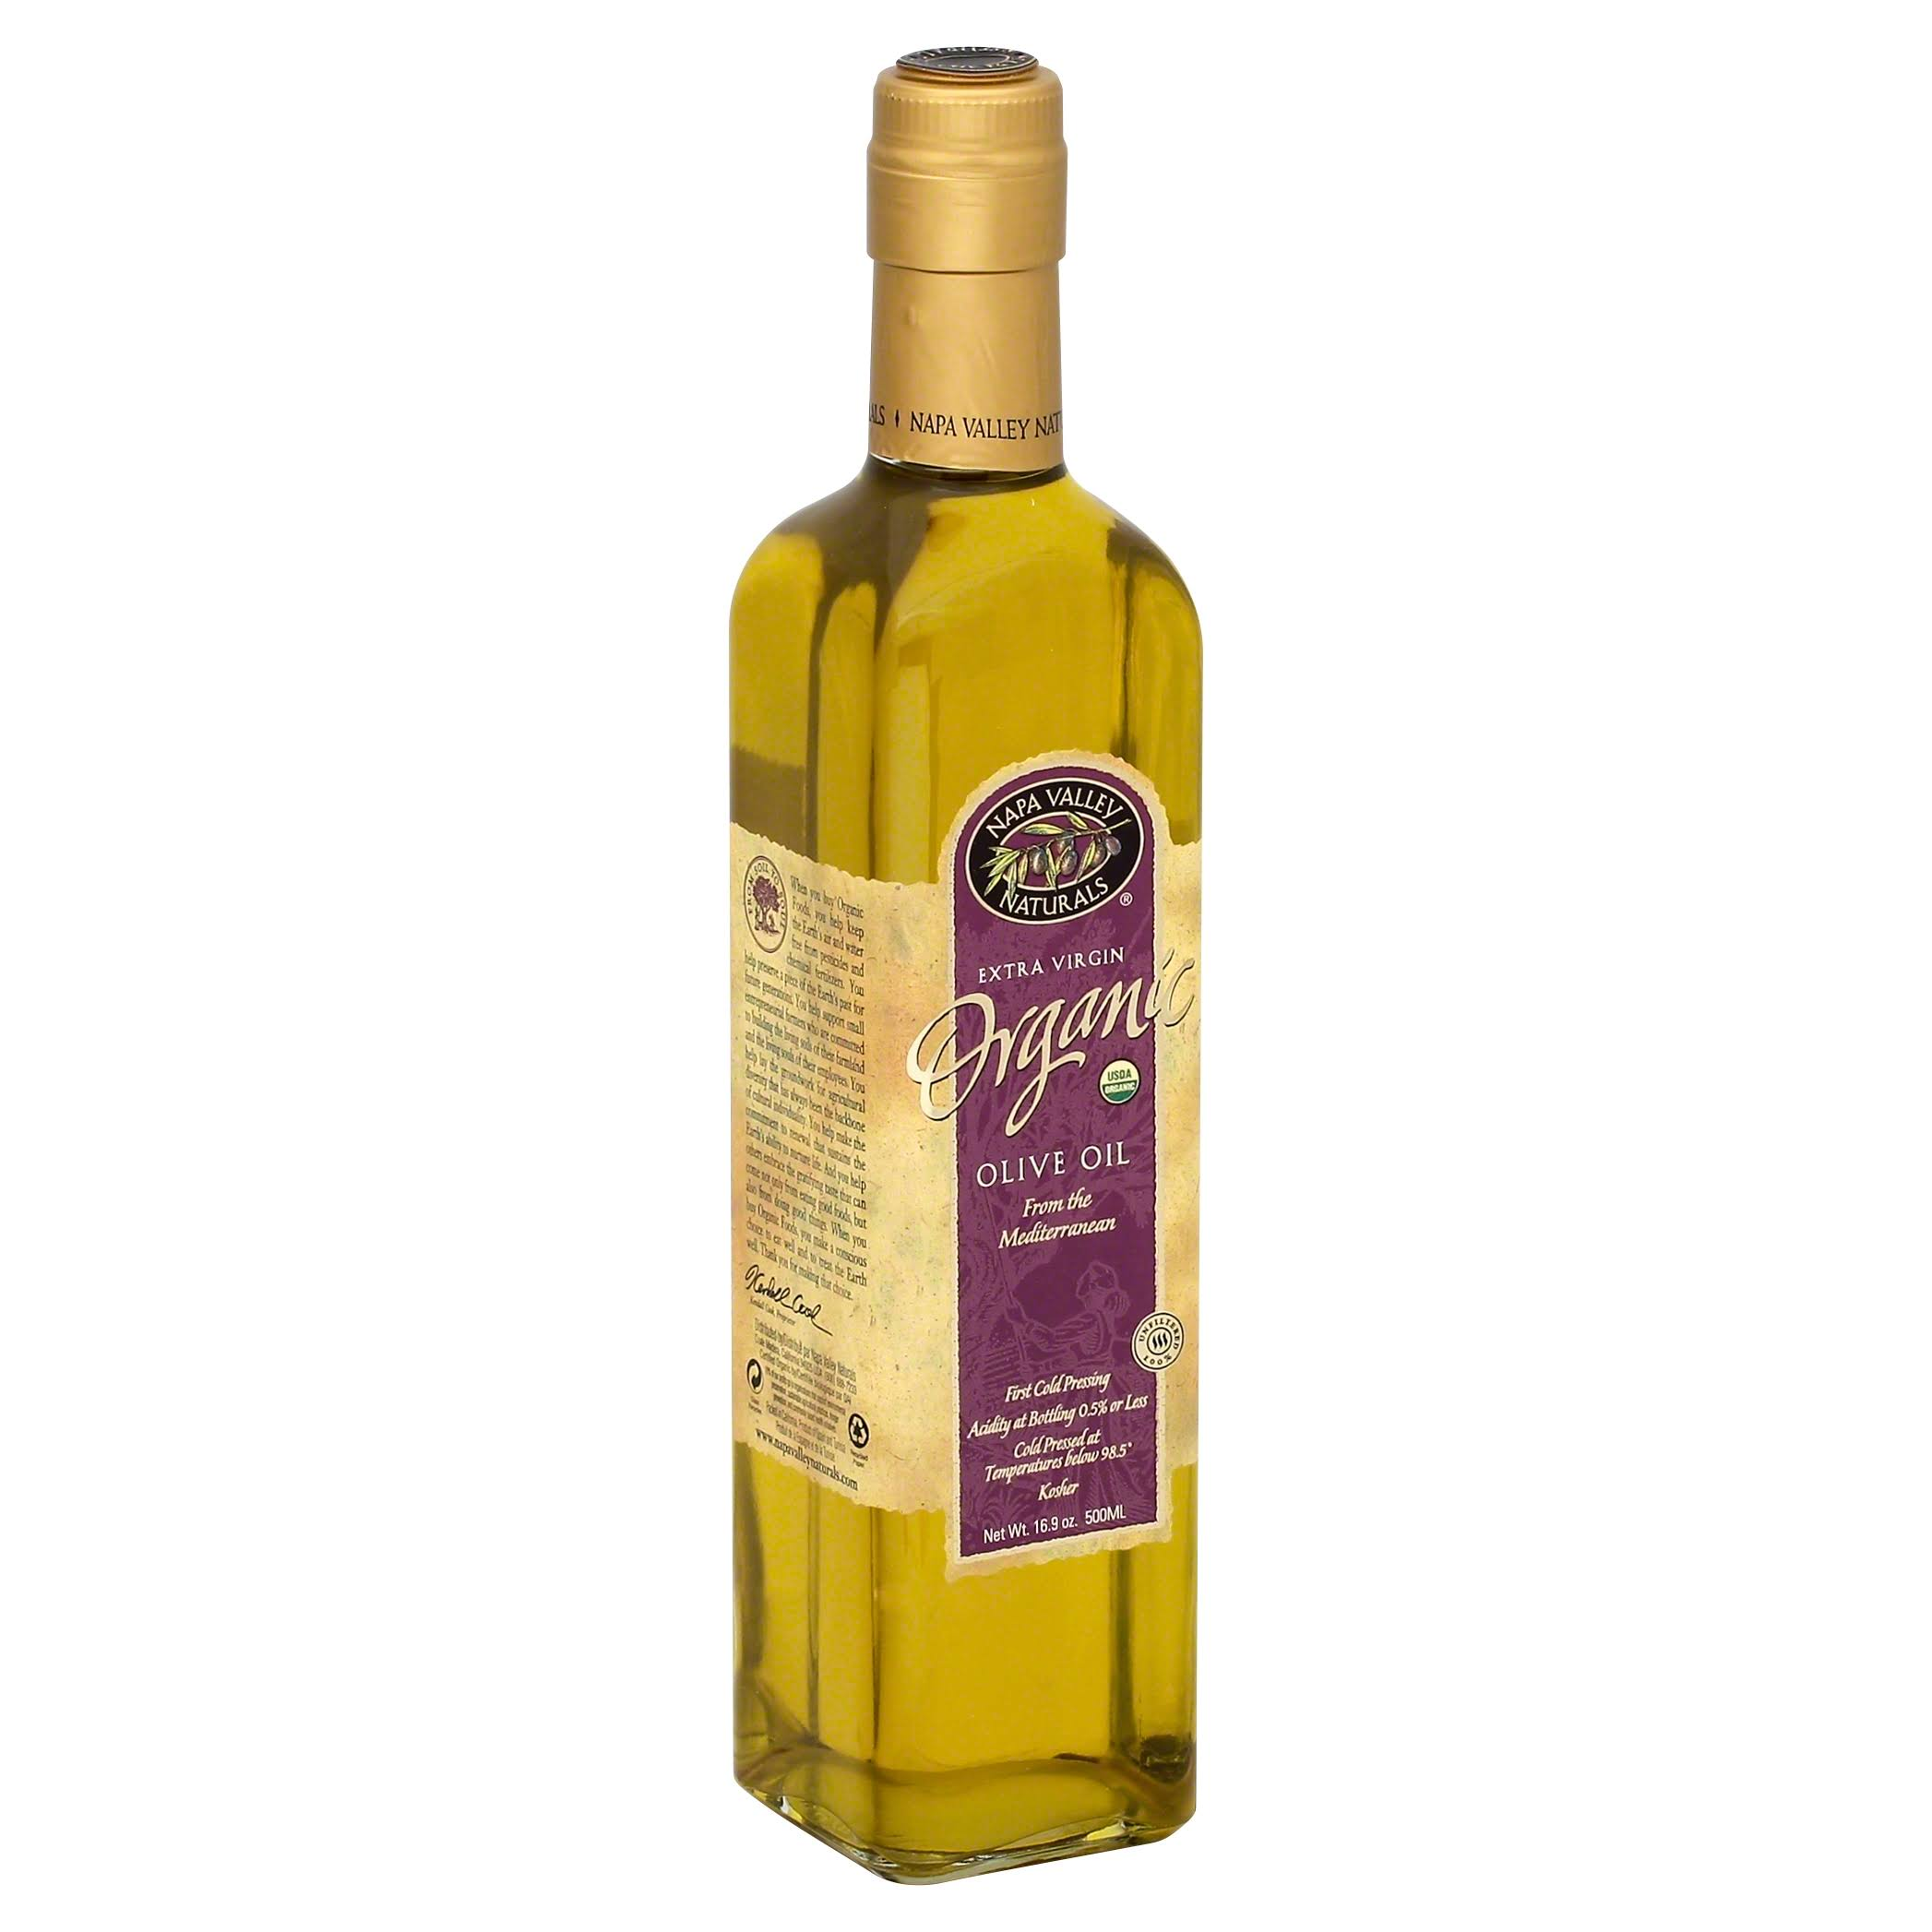 Napa Valley Naturals Organic Olive Oil, Extra Virgin - 16.9 fl oz bottle